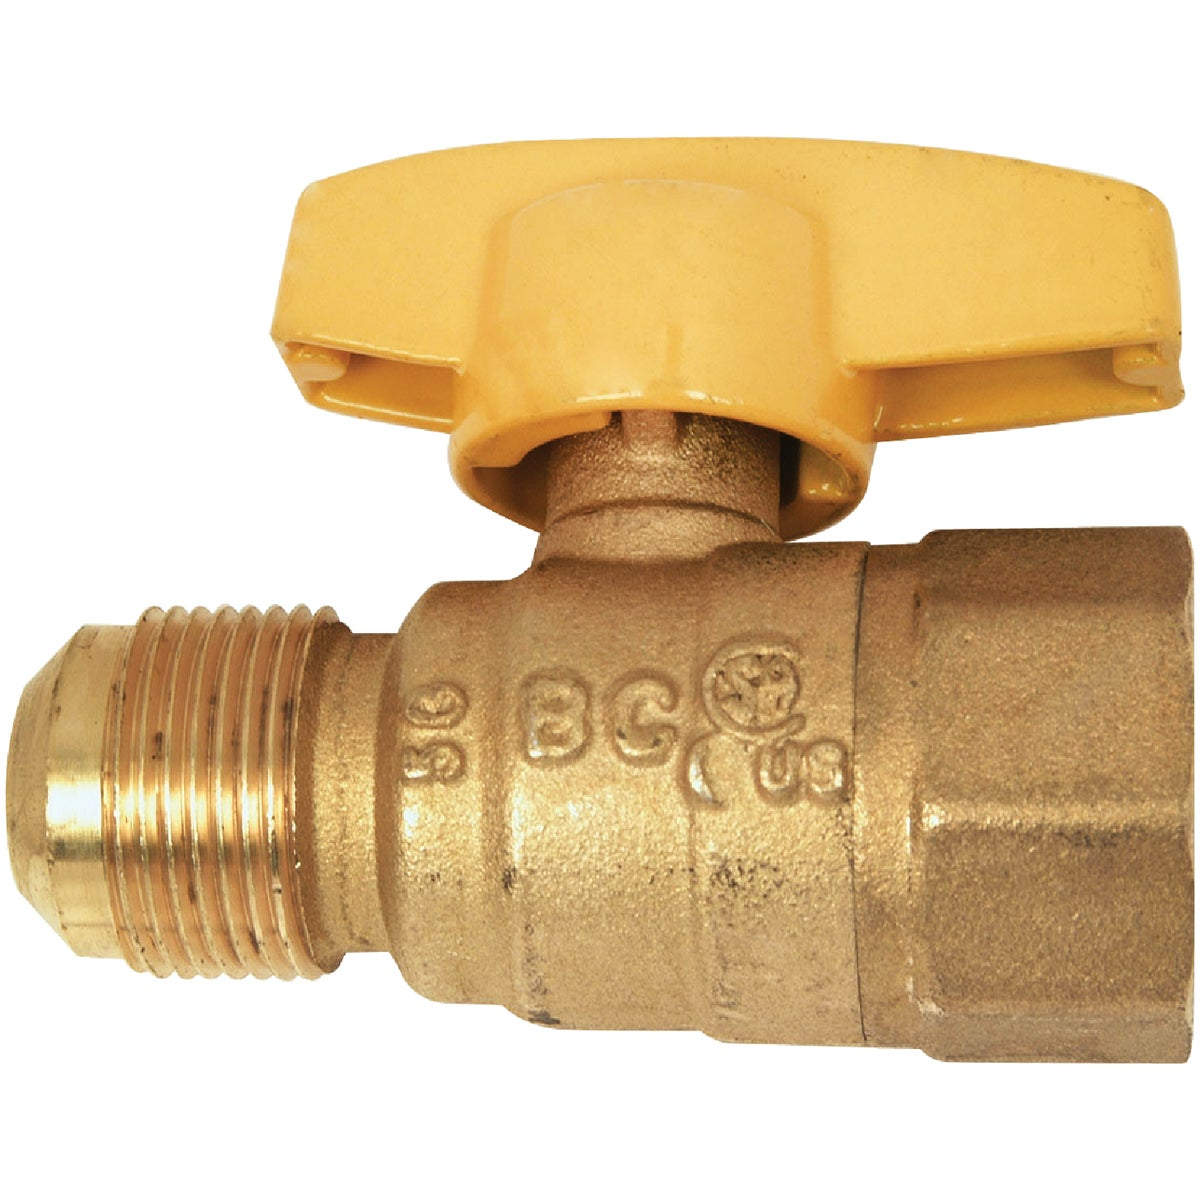 5/8X3/4 GAS VALVE - PSSC-60 by Brass Craft